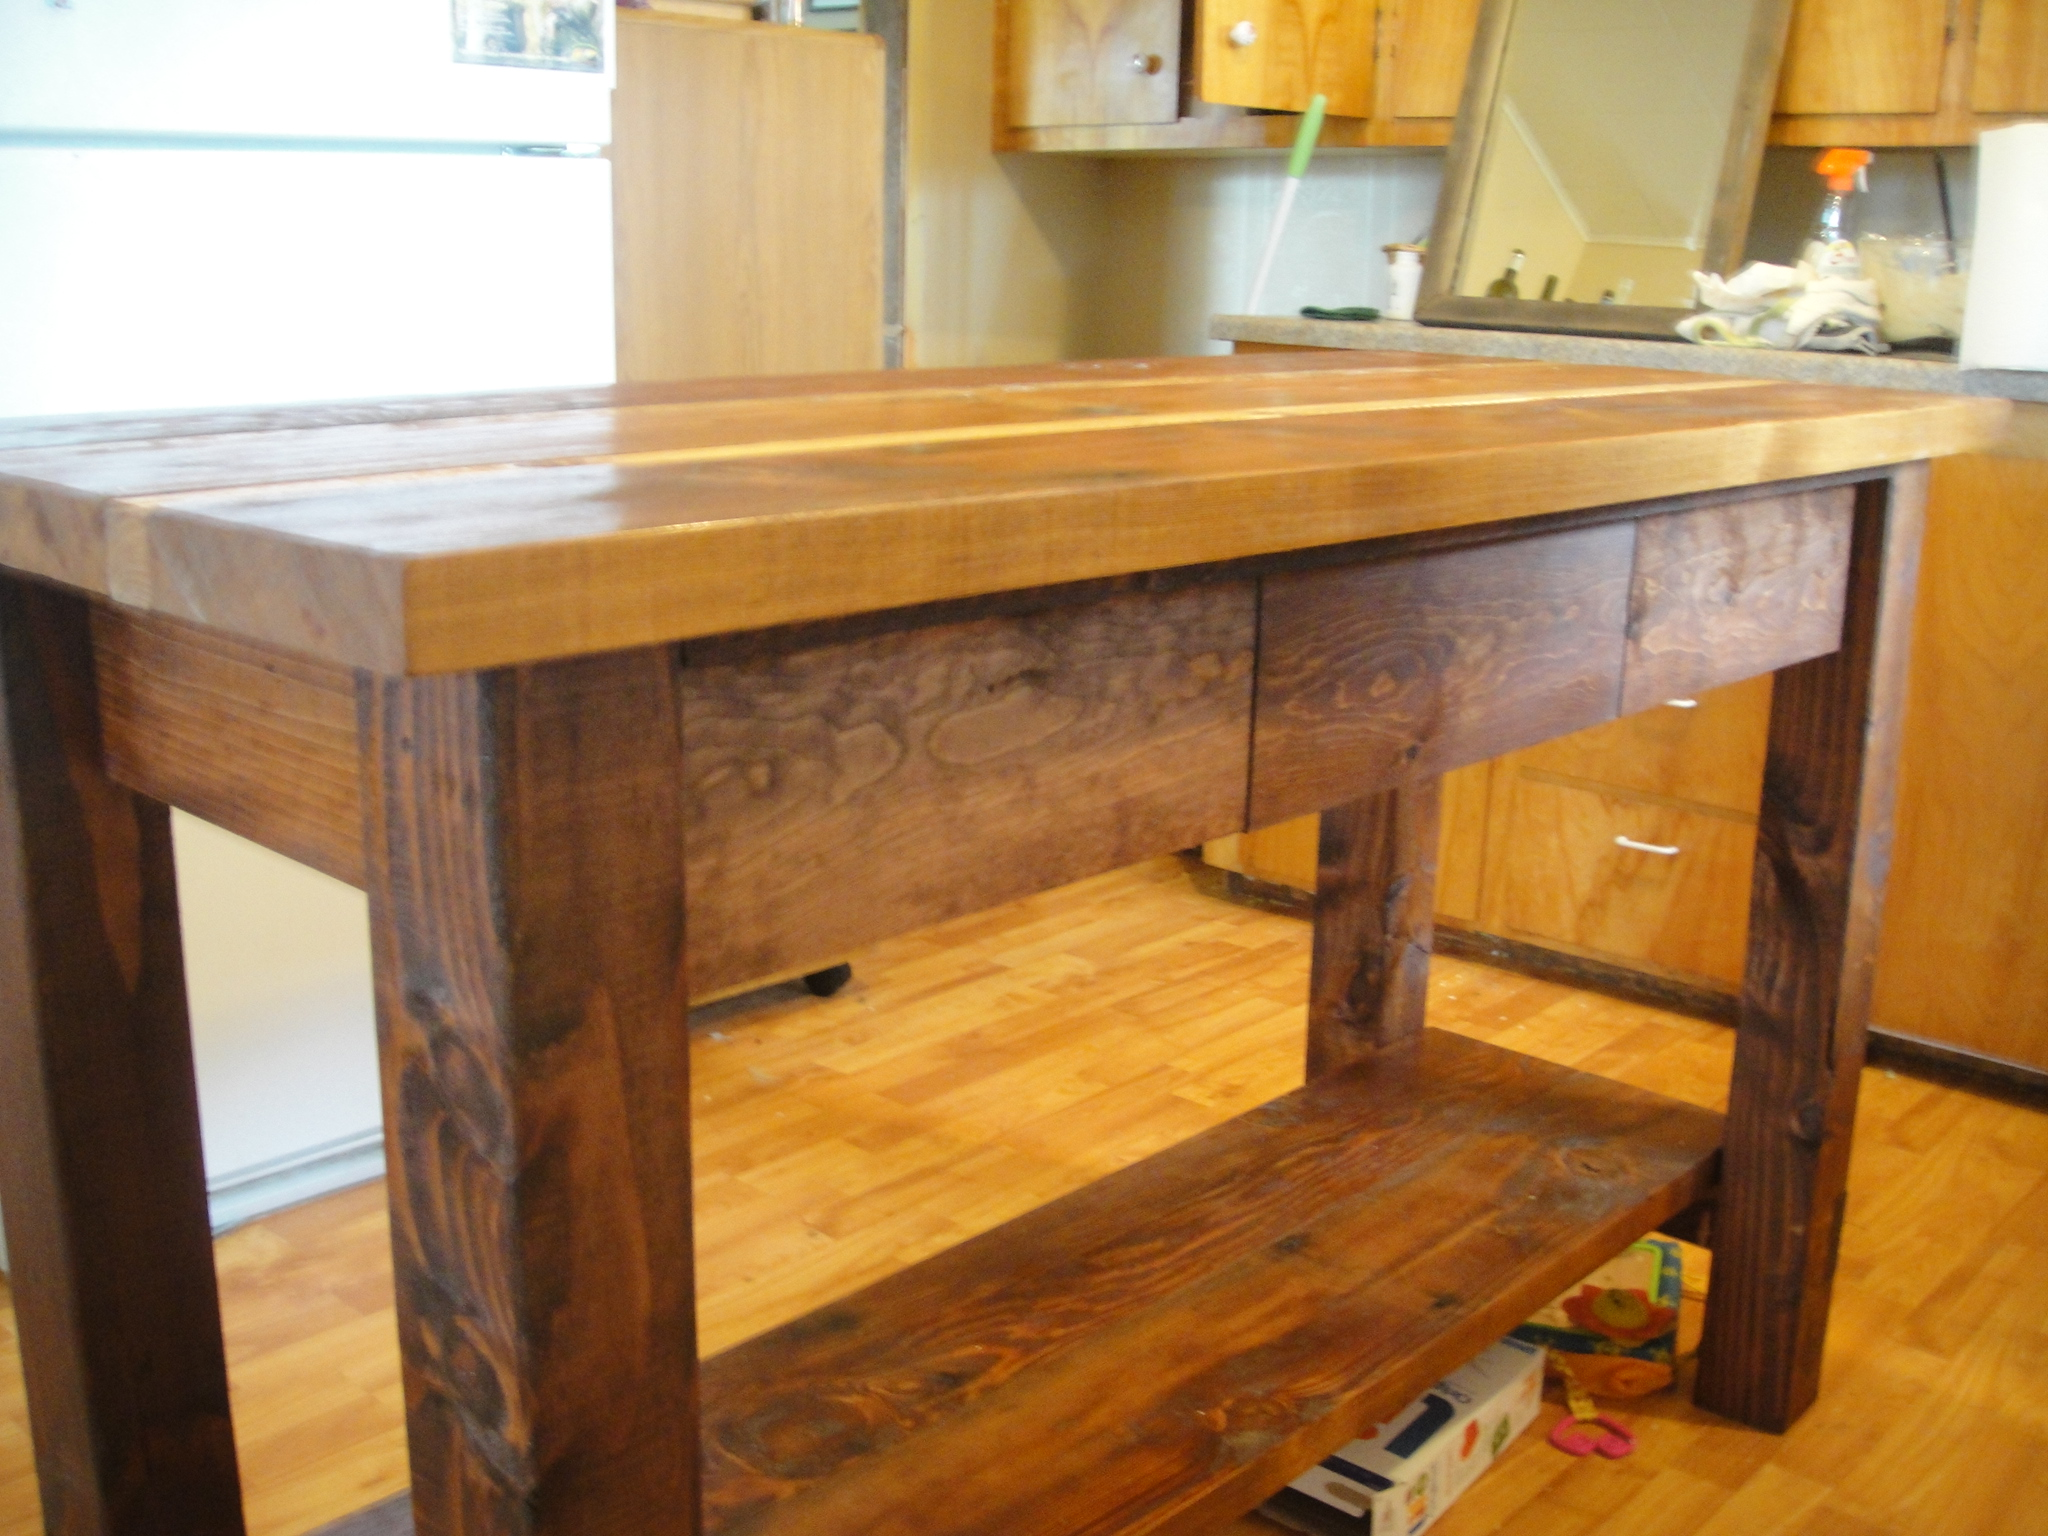 Ana white kitchen island from reclaimed wood diy projects for Making a kitchen island from cabinets